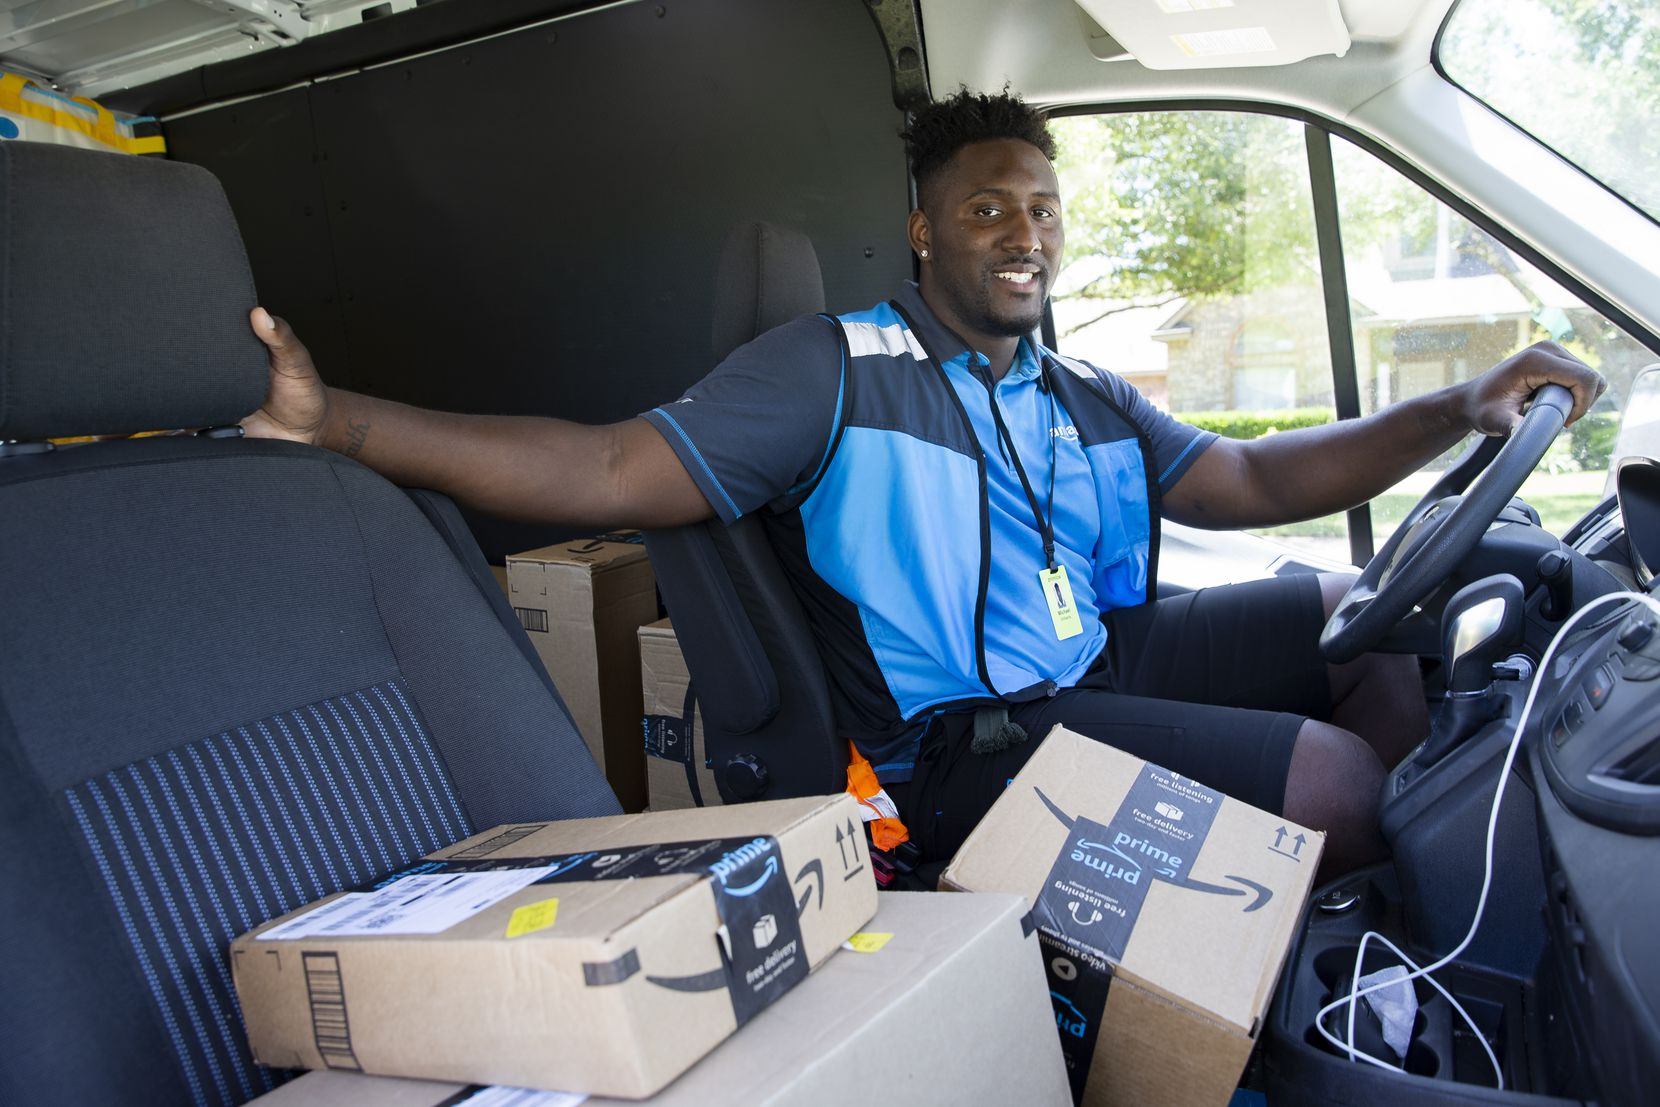 Mike Williams, a SMU defensive tackle, poses for a portrait in between stops on May 29, 2020 in Midlothian. Williams has taken a summer job as an Amazon Prime delivery driver to earn extra money.